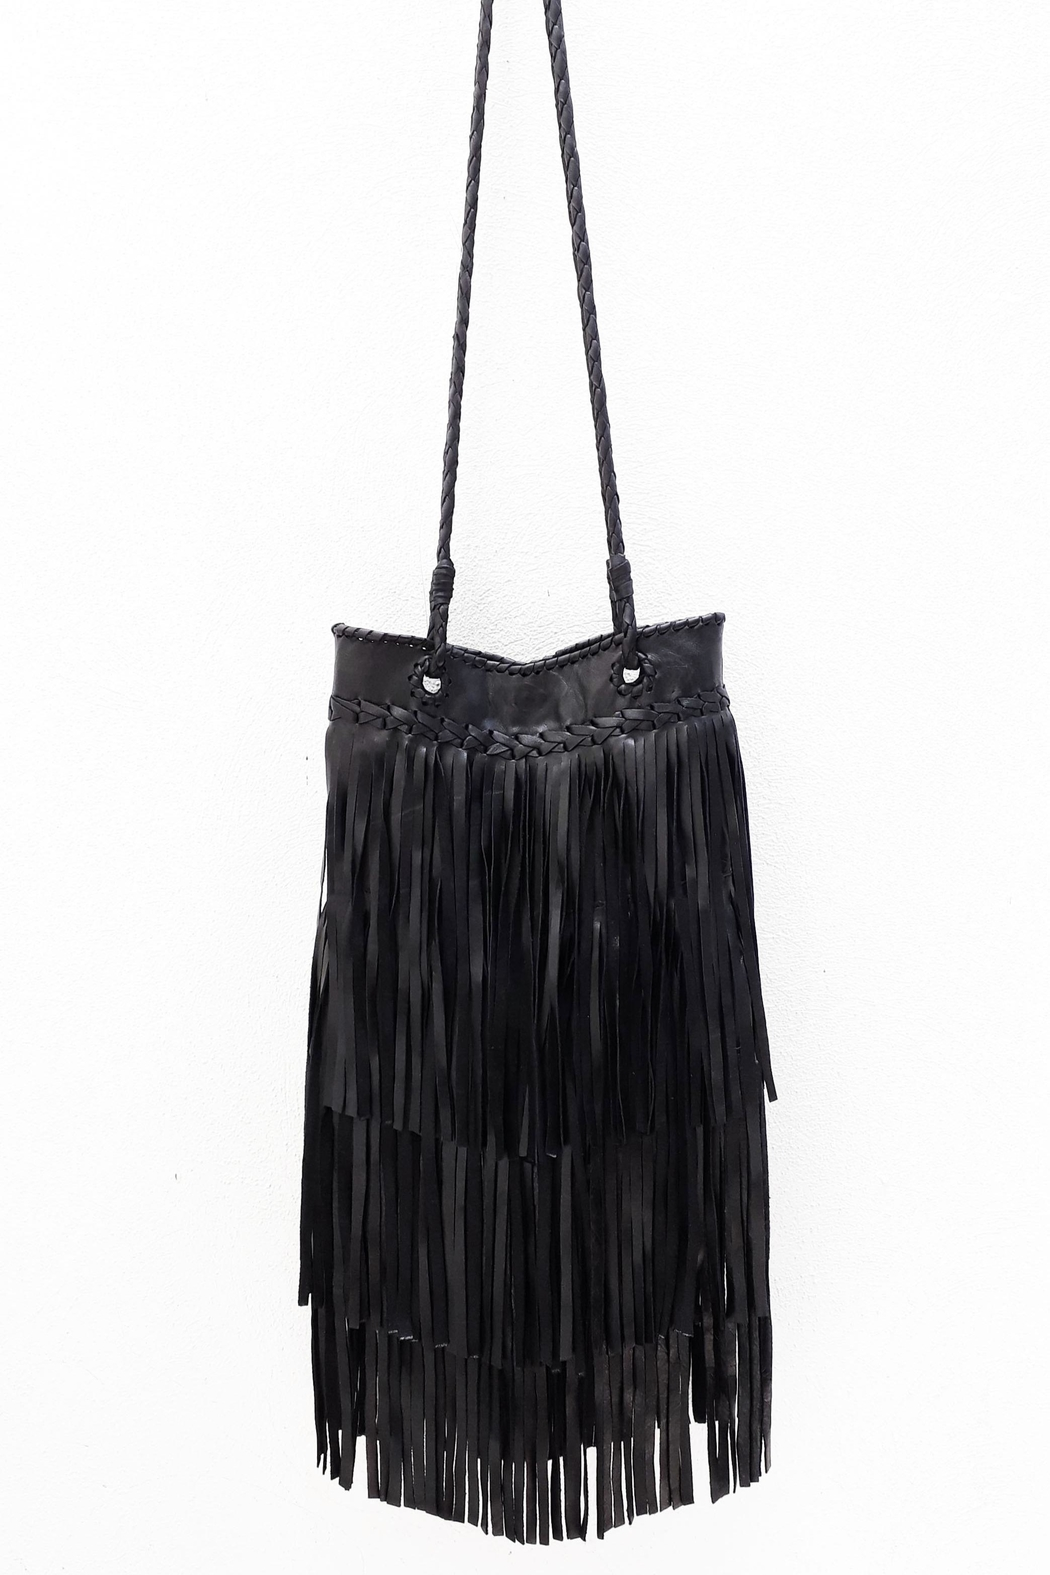 Areias Leather Black Leather Bag - Front Cropped Image